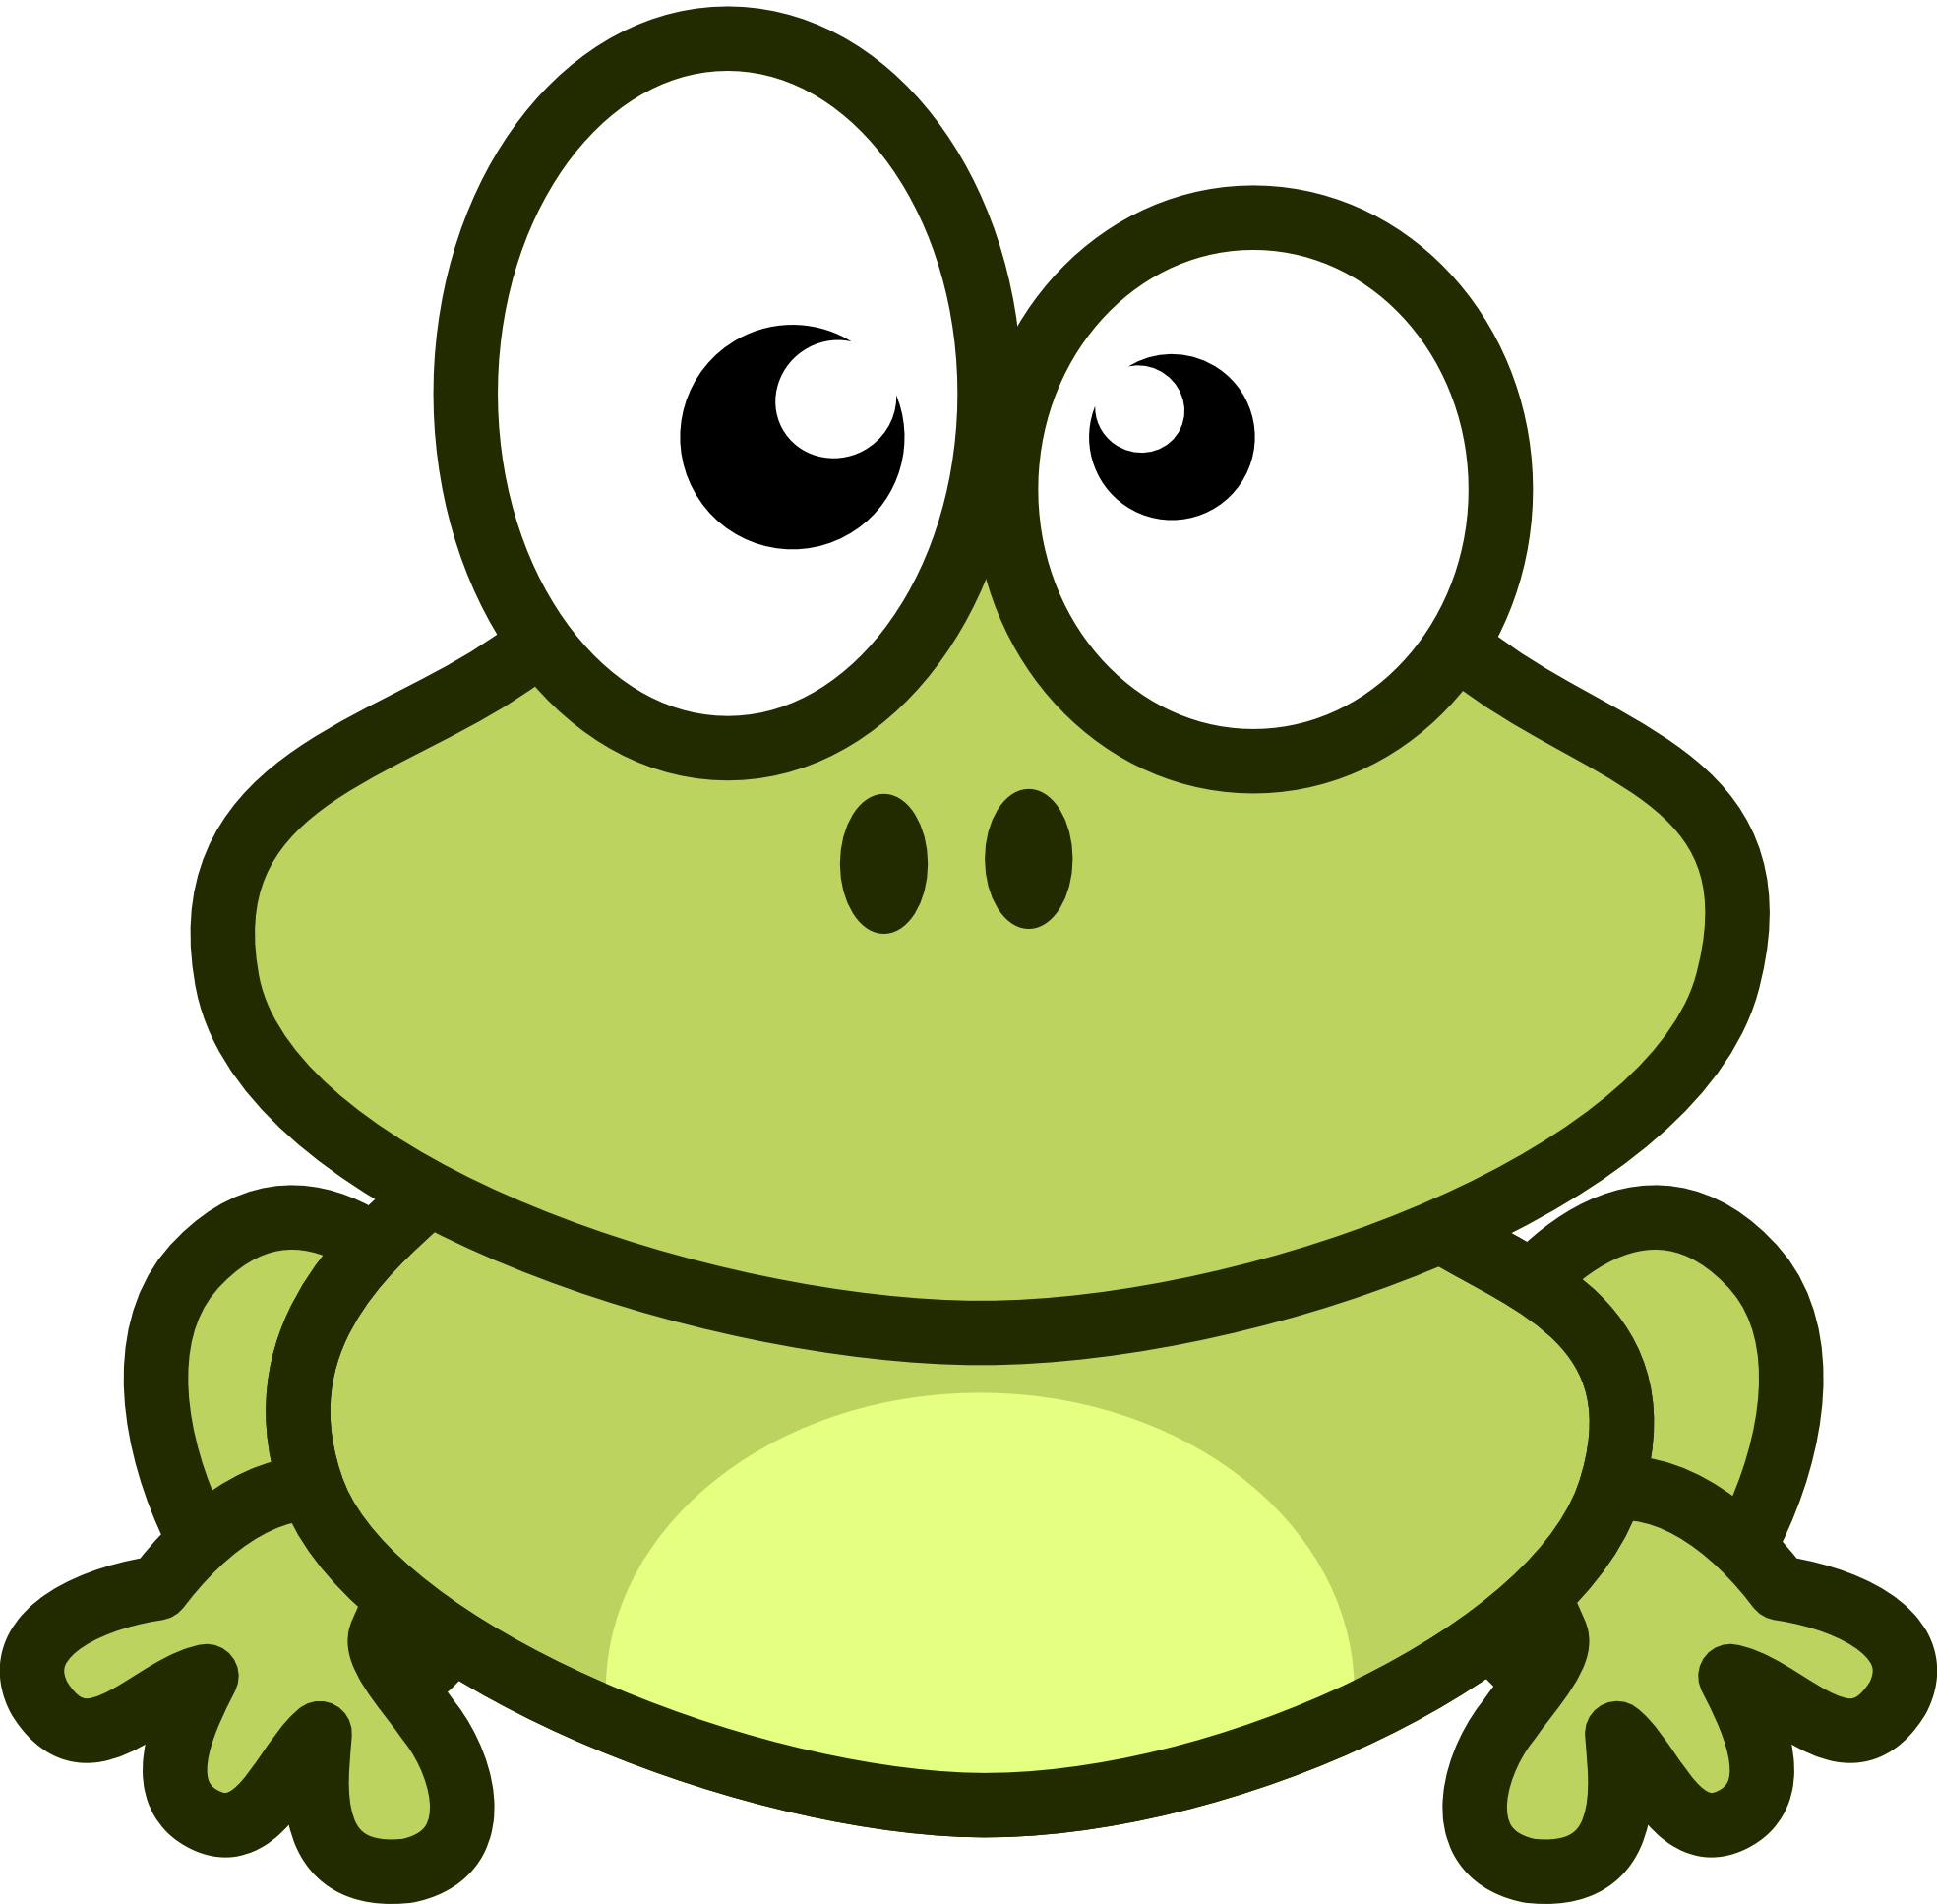 Frog vector clipart clip freeuse FROG Vector Free - ClipArt Best - Cliparts.co clip freeuse